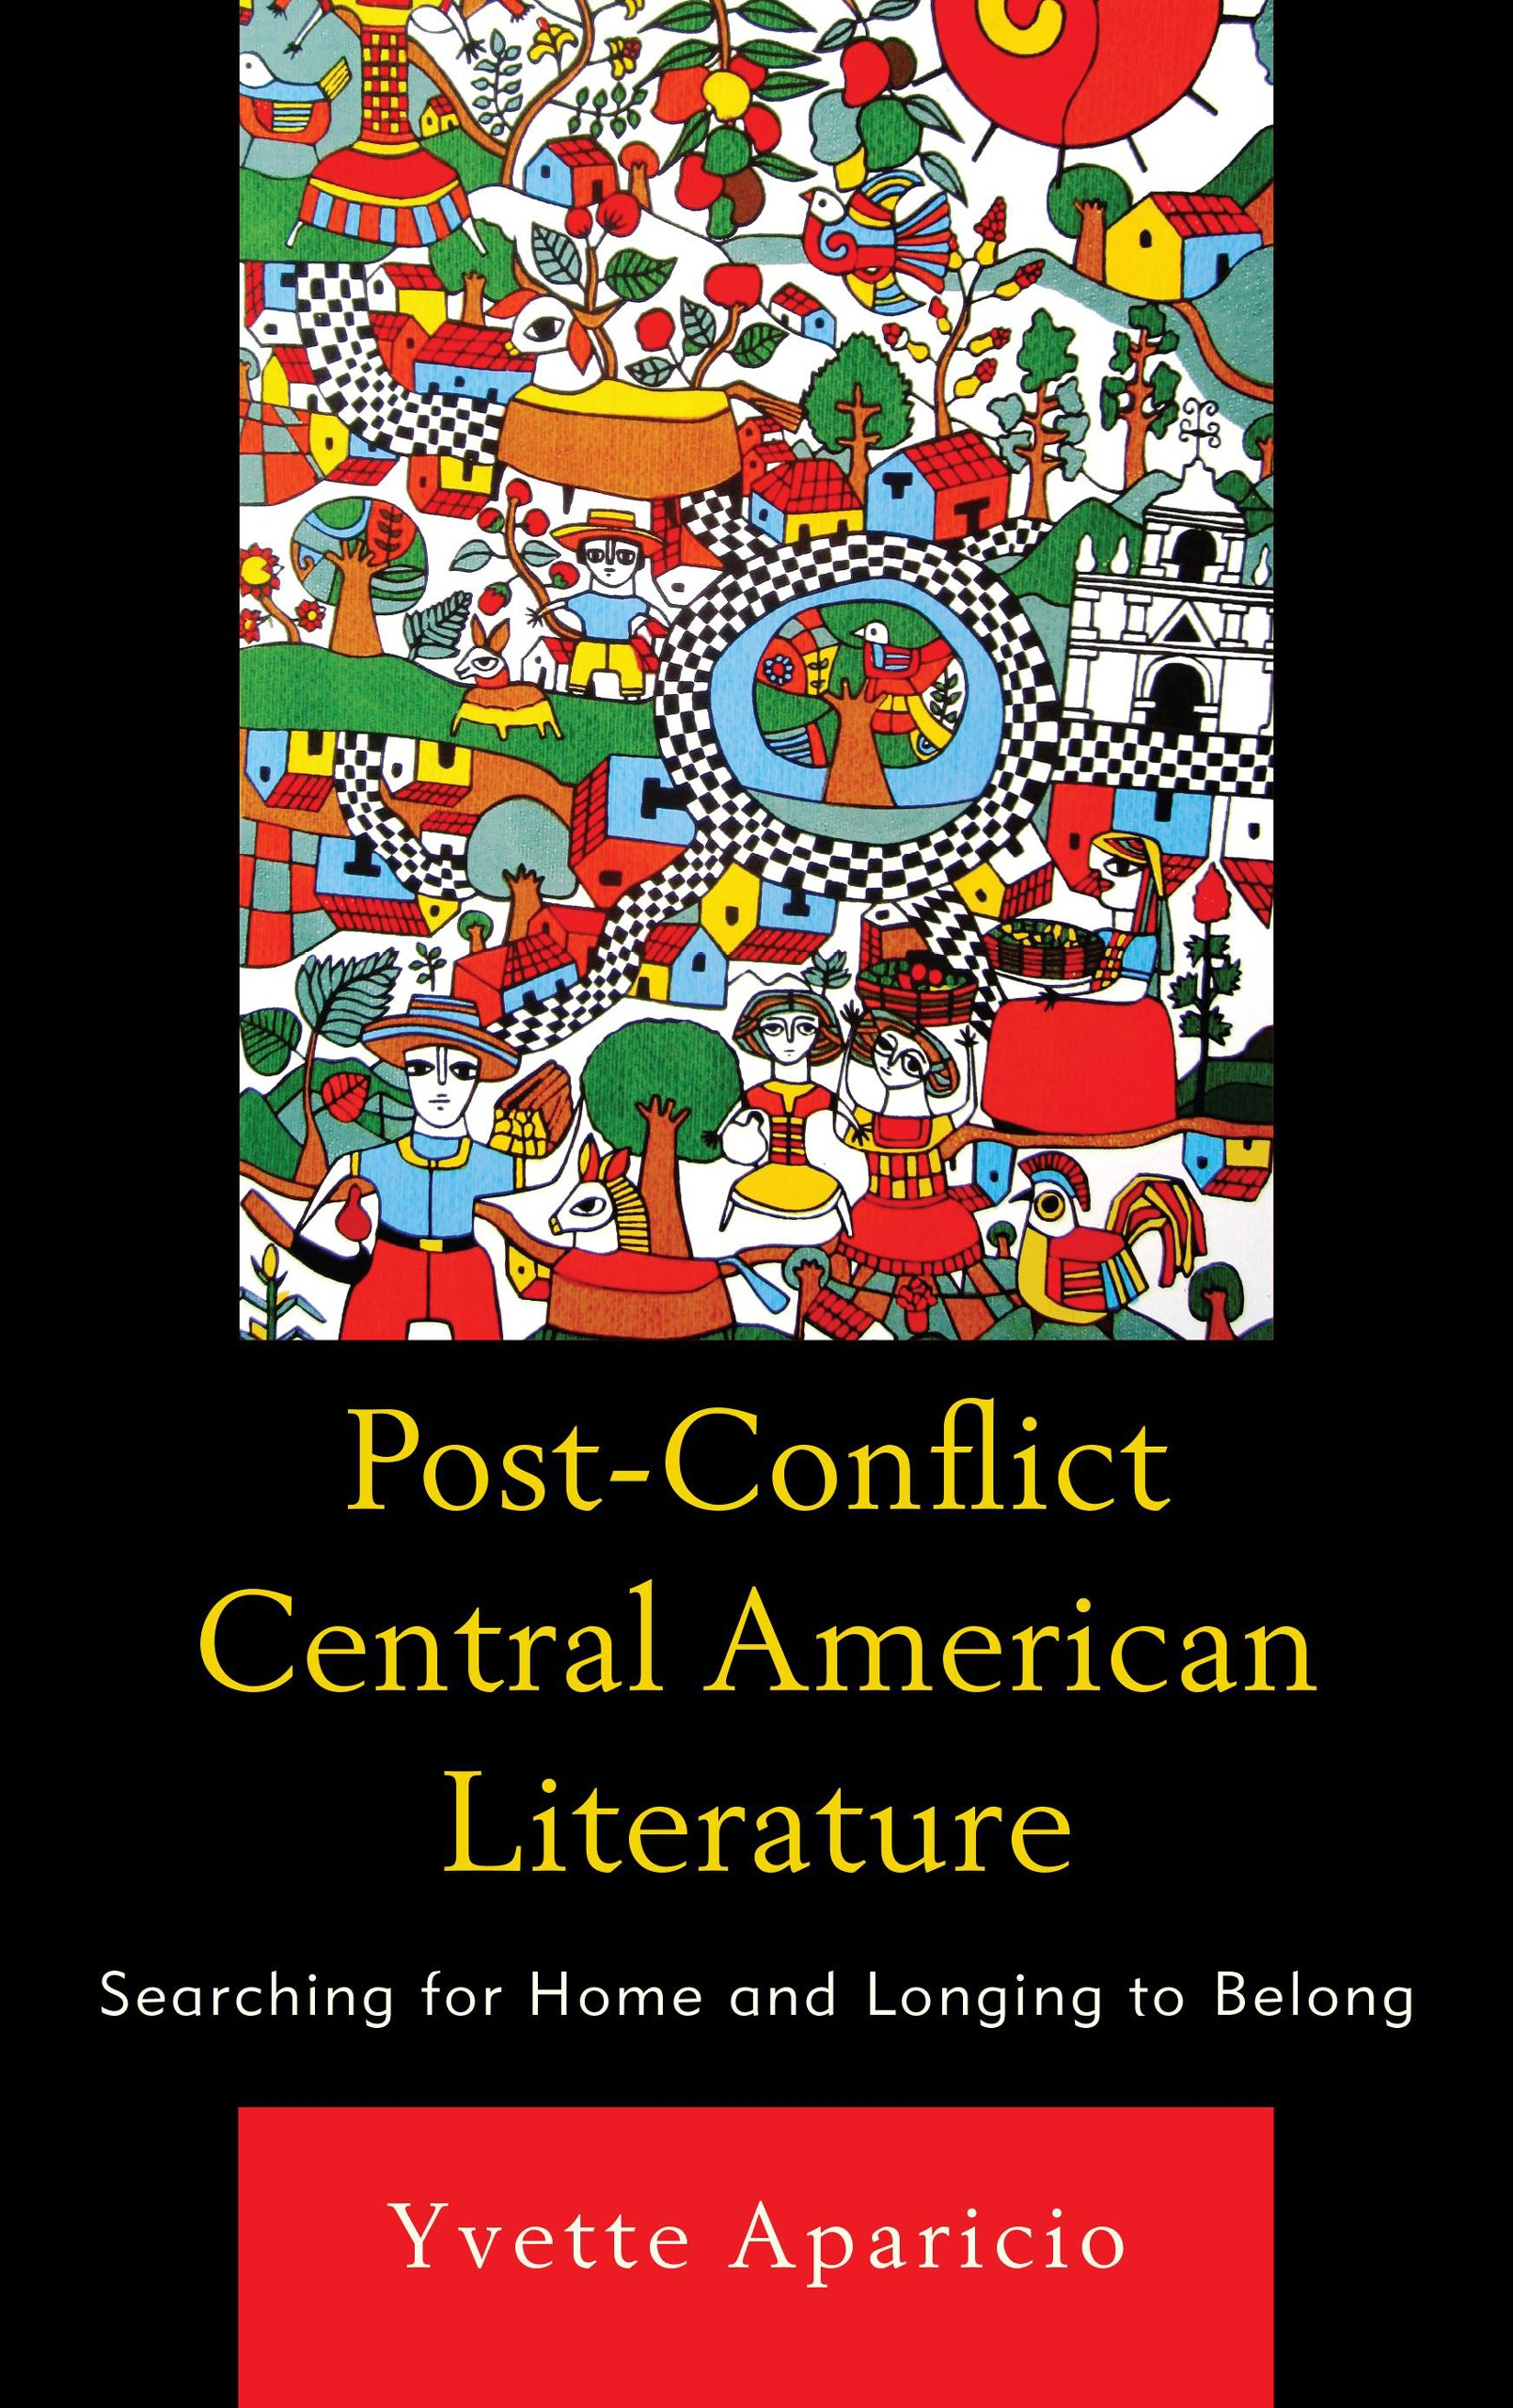 Post-Conflict Central American Literature: Searching for Home and Longing to Belong pdf epub